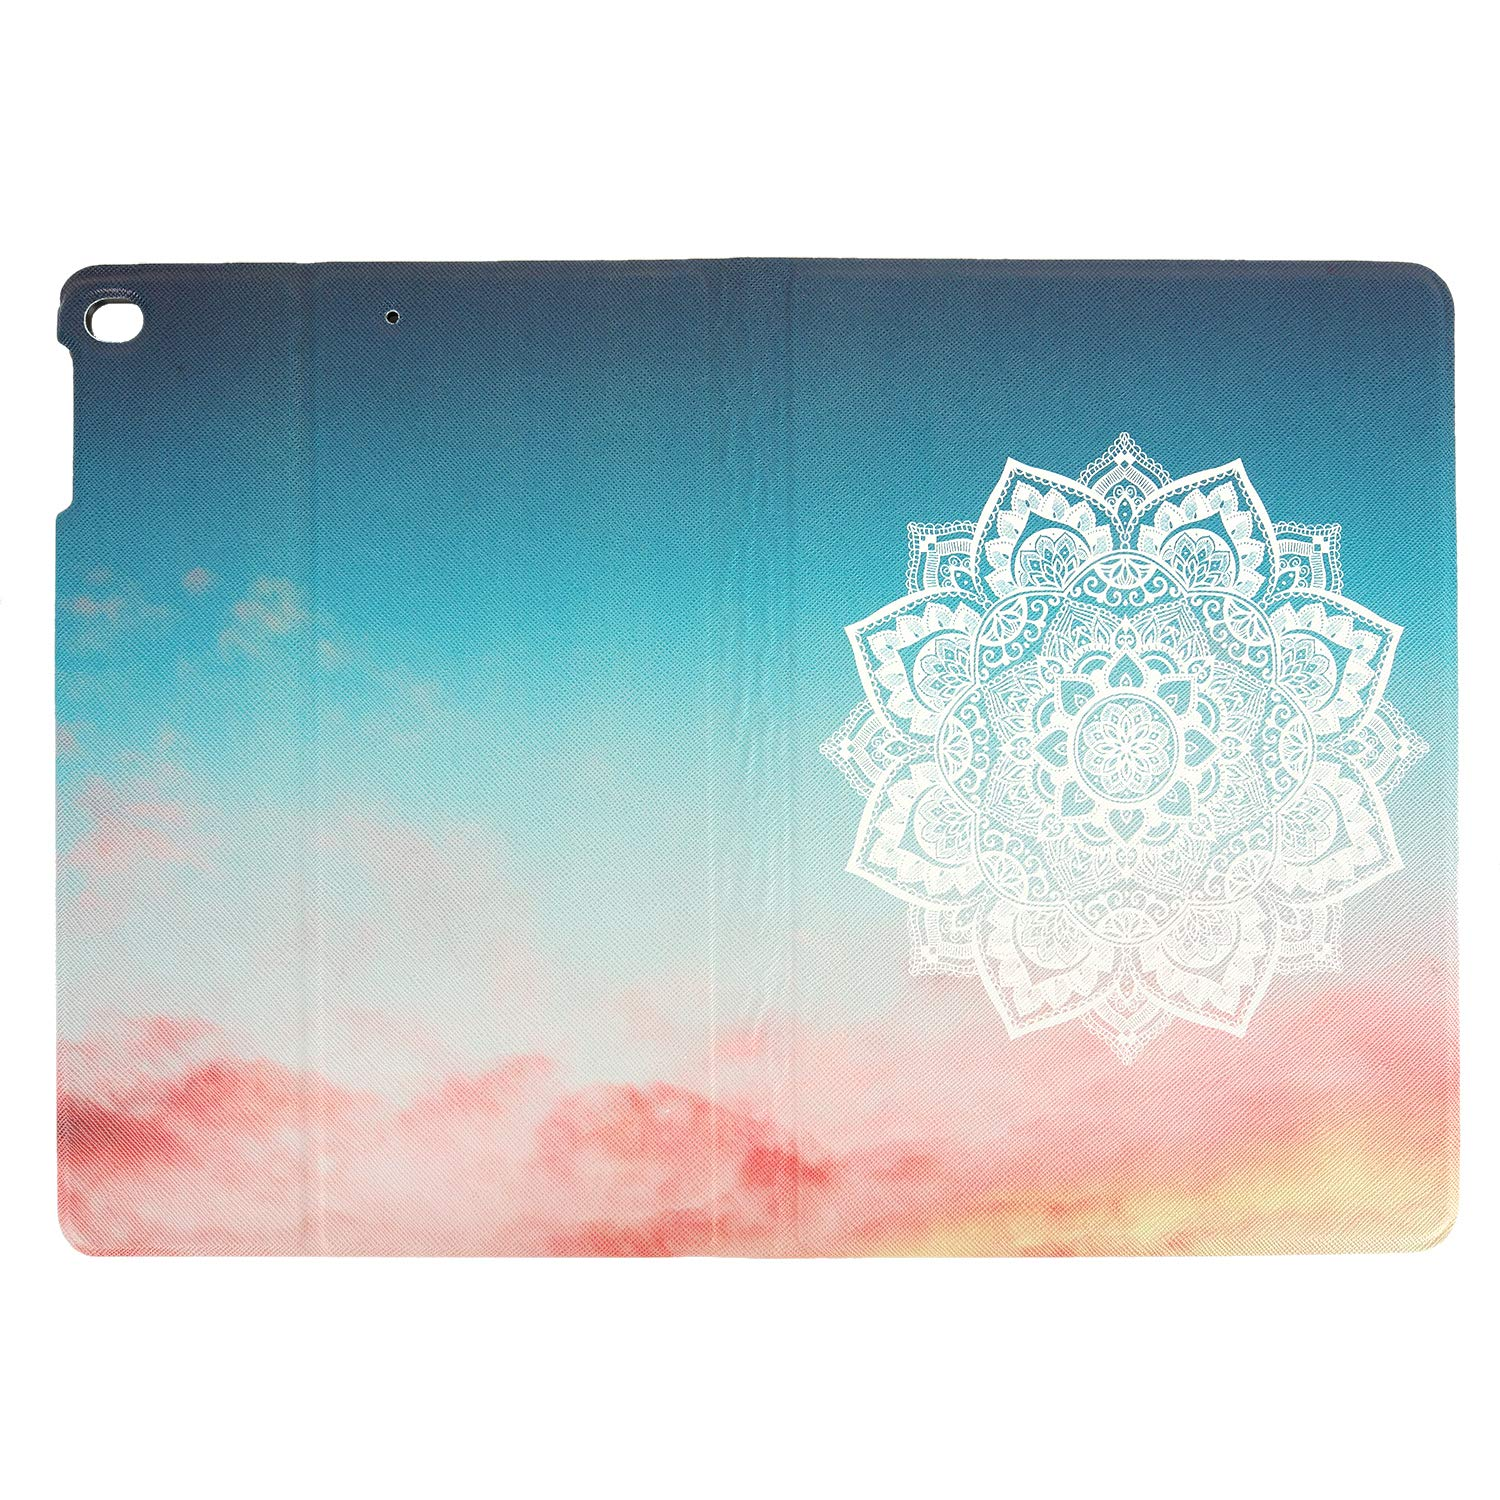 True Holiday iPad case 9.7 inch Ultra Slim Lightweight with Stand and Auto Wake Sleep function Protective Smart Cover Case for 9.7 inch 2017/2018 (mandala1)